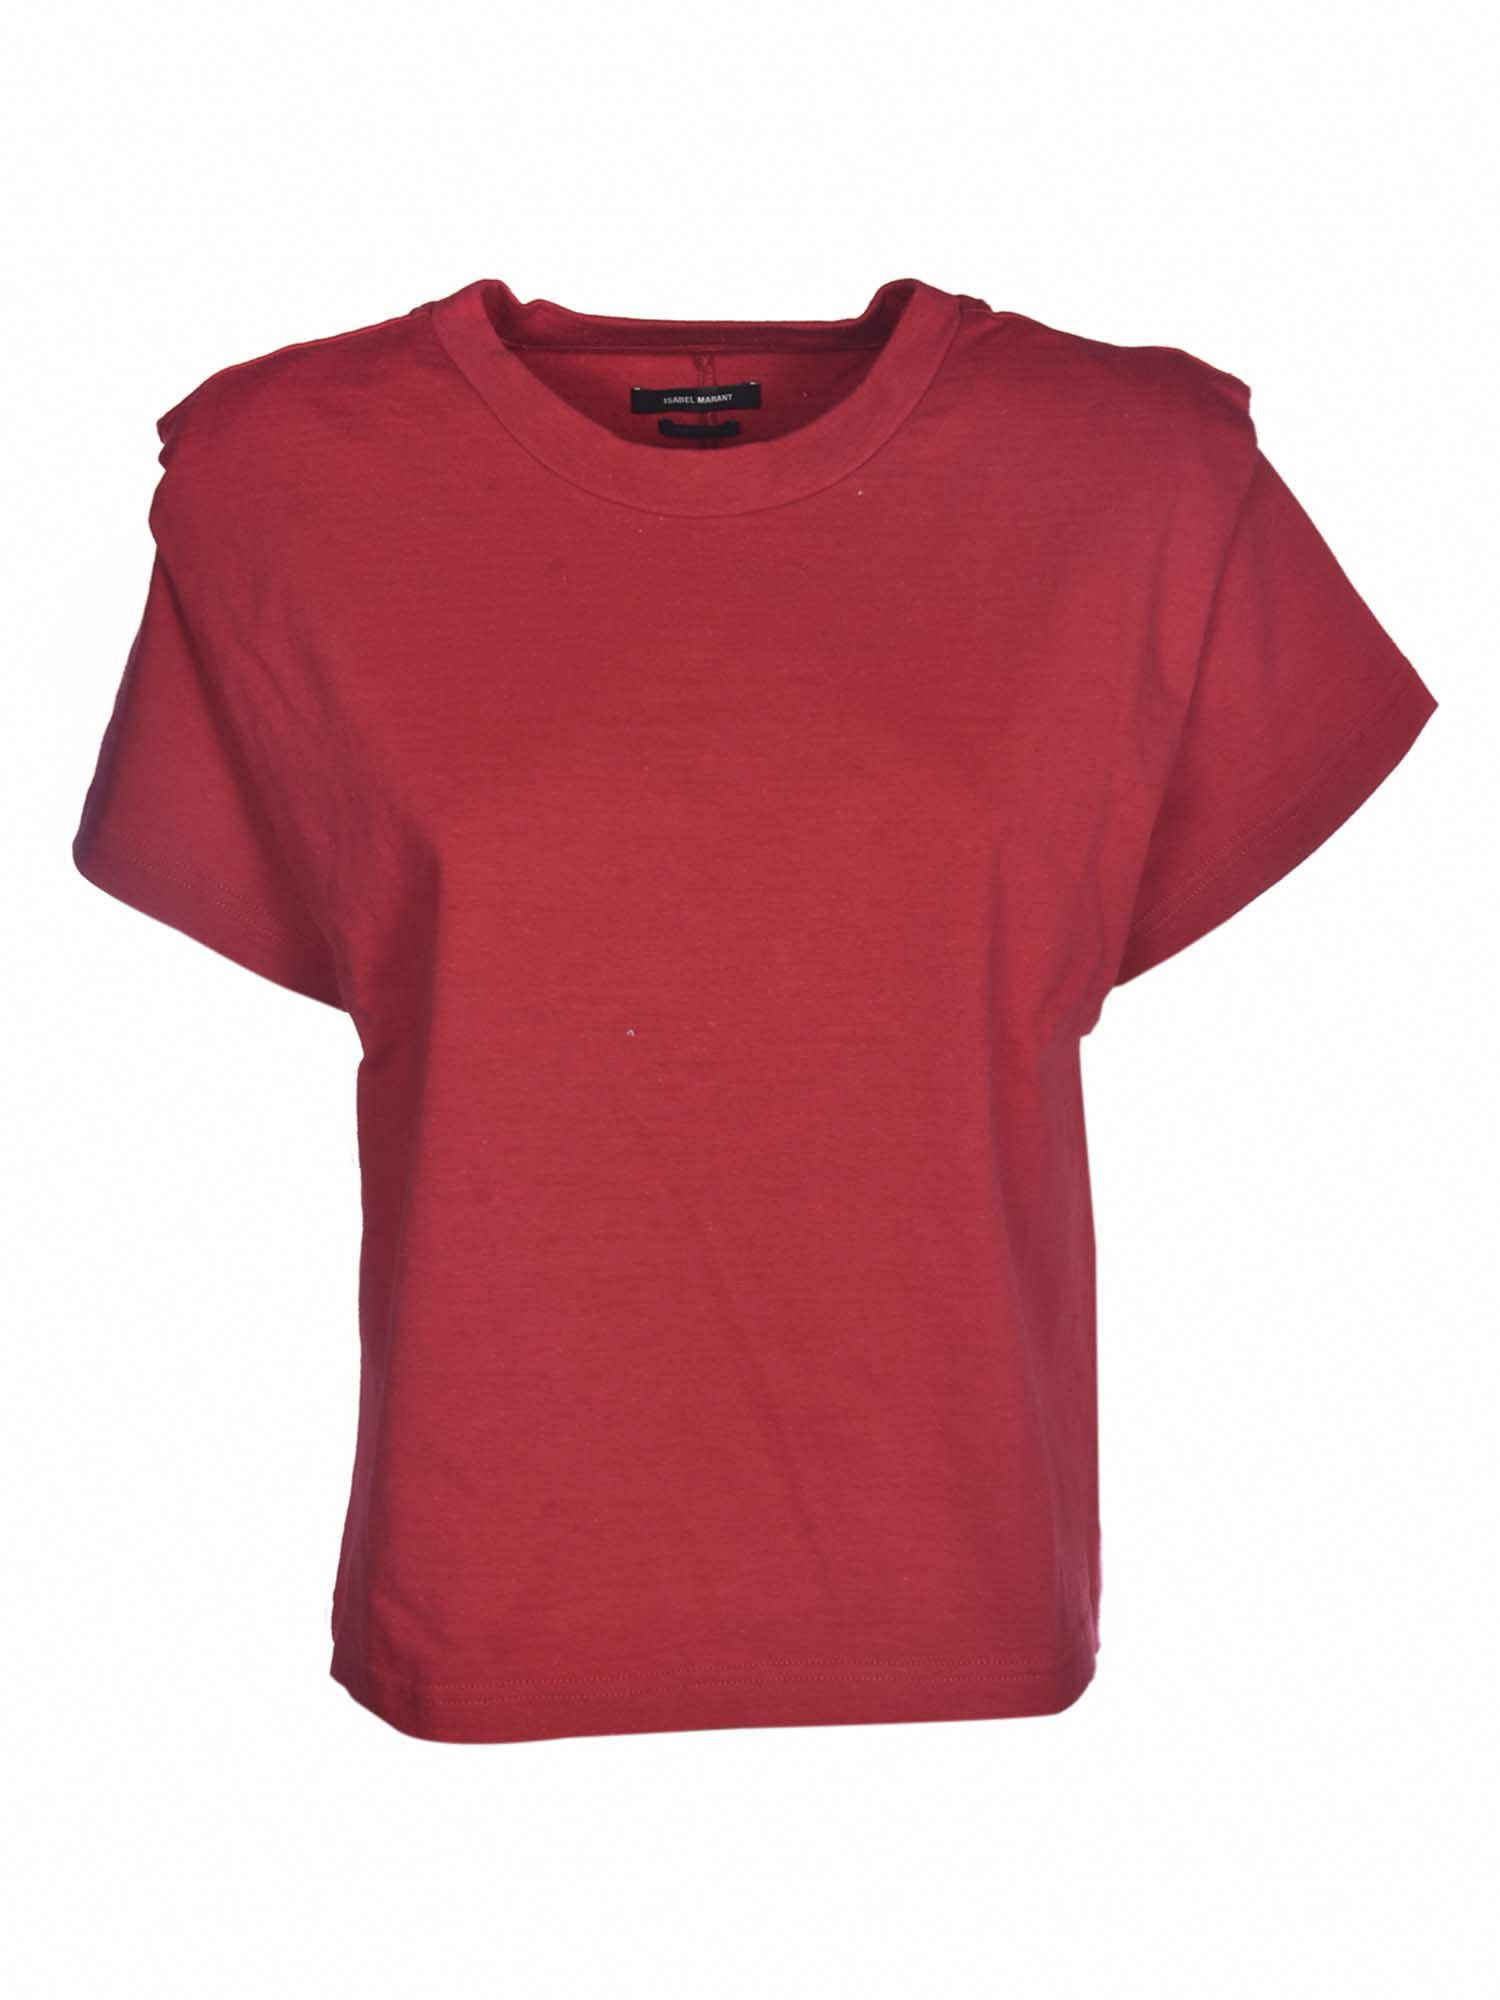 Isabel Marant ISABEL MARANT ZELITOS T-SHIRT IN RED